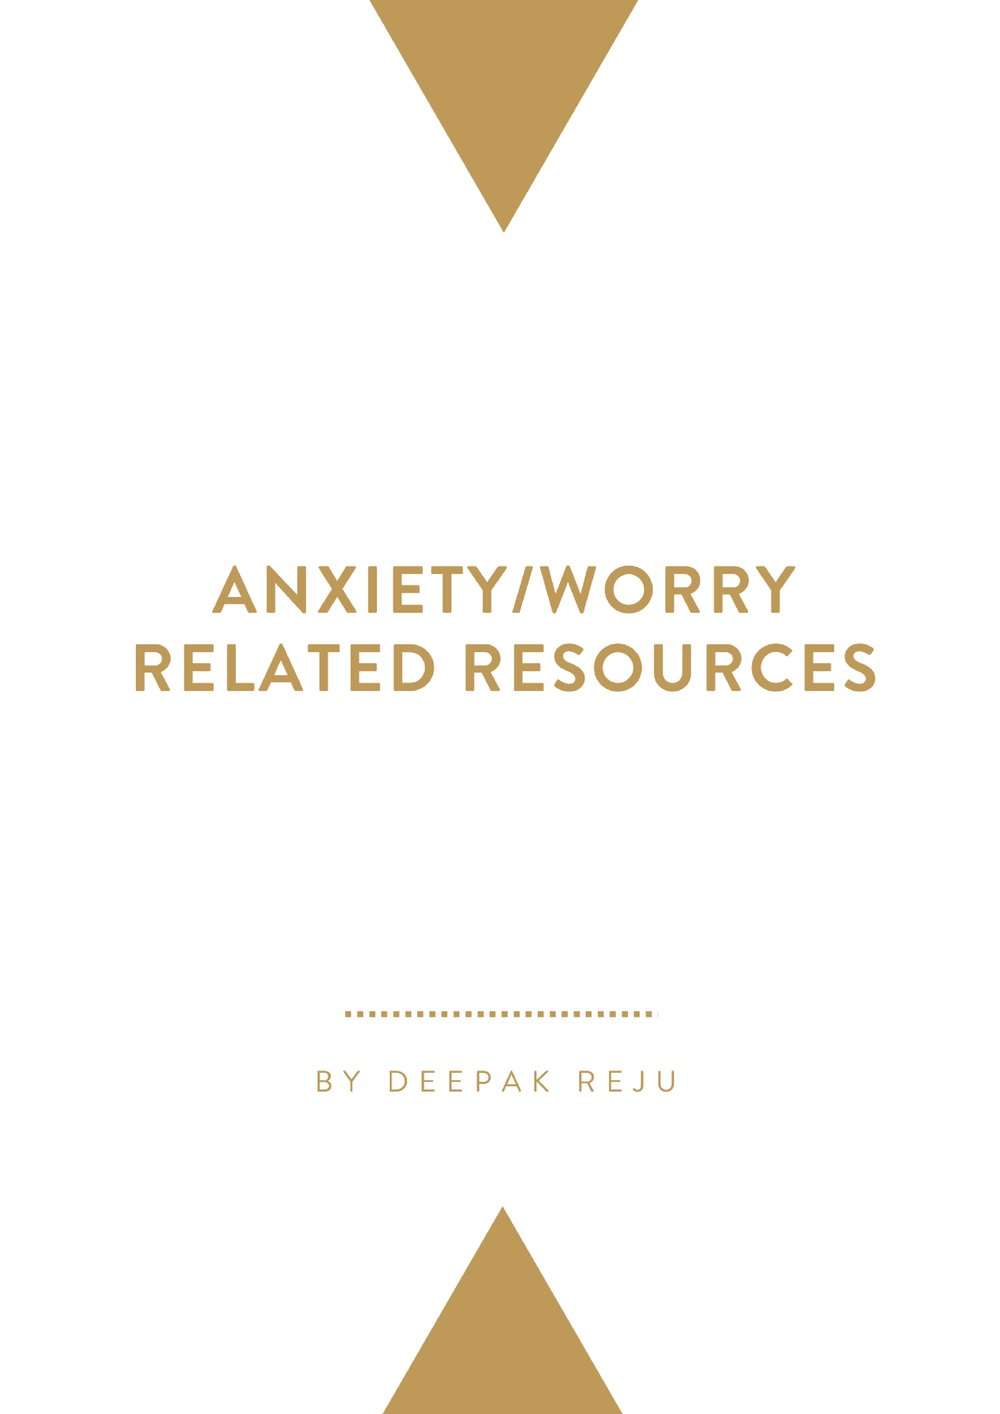 Anxiety/Worry Related Resources By Deepak Reju